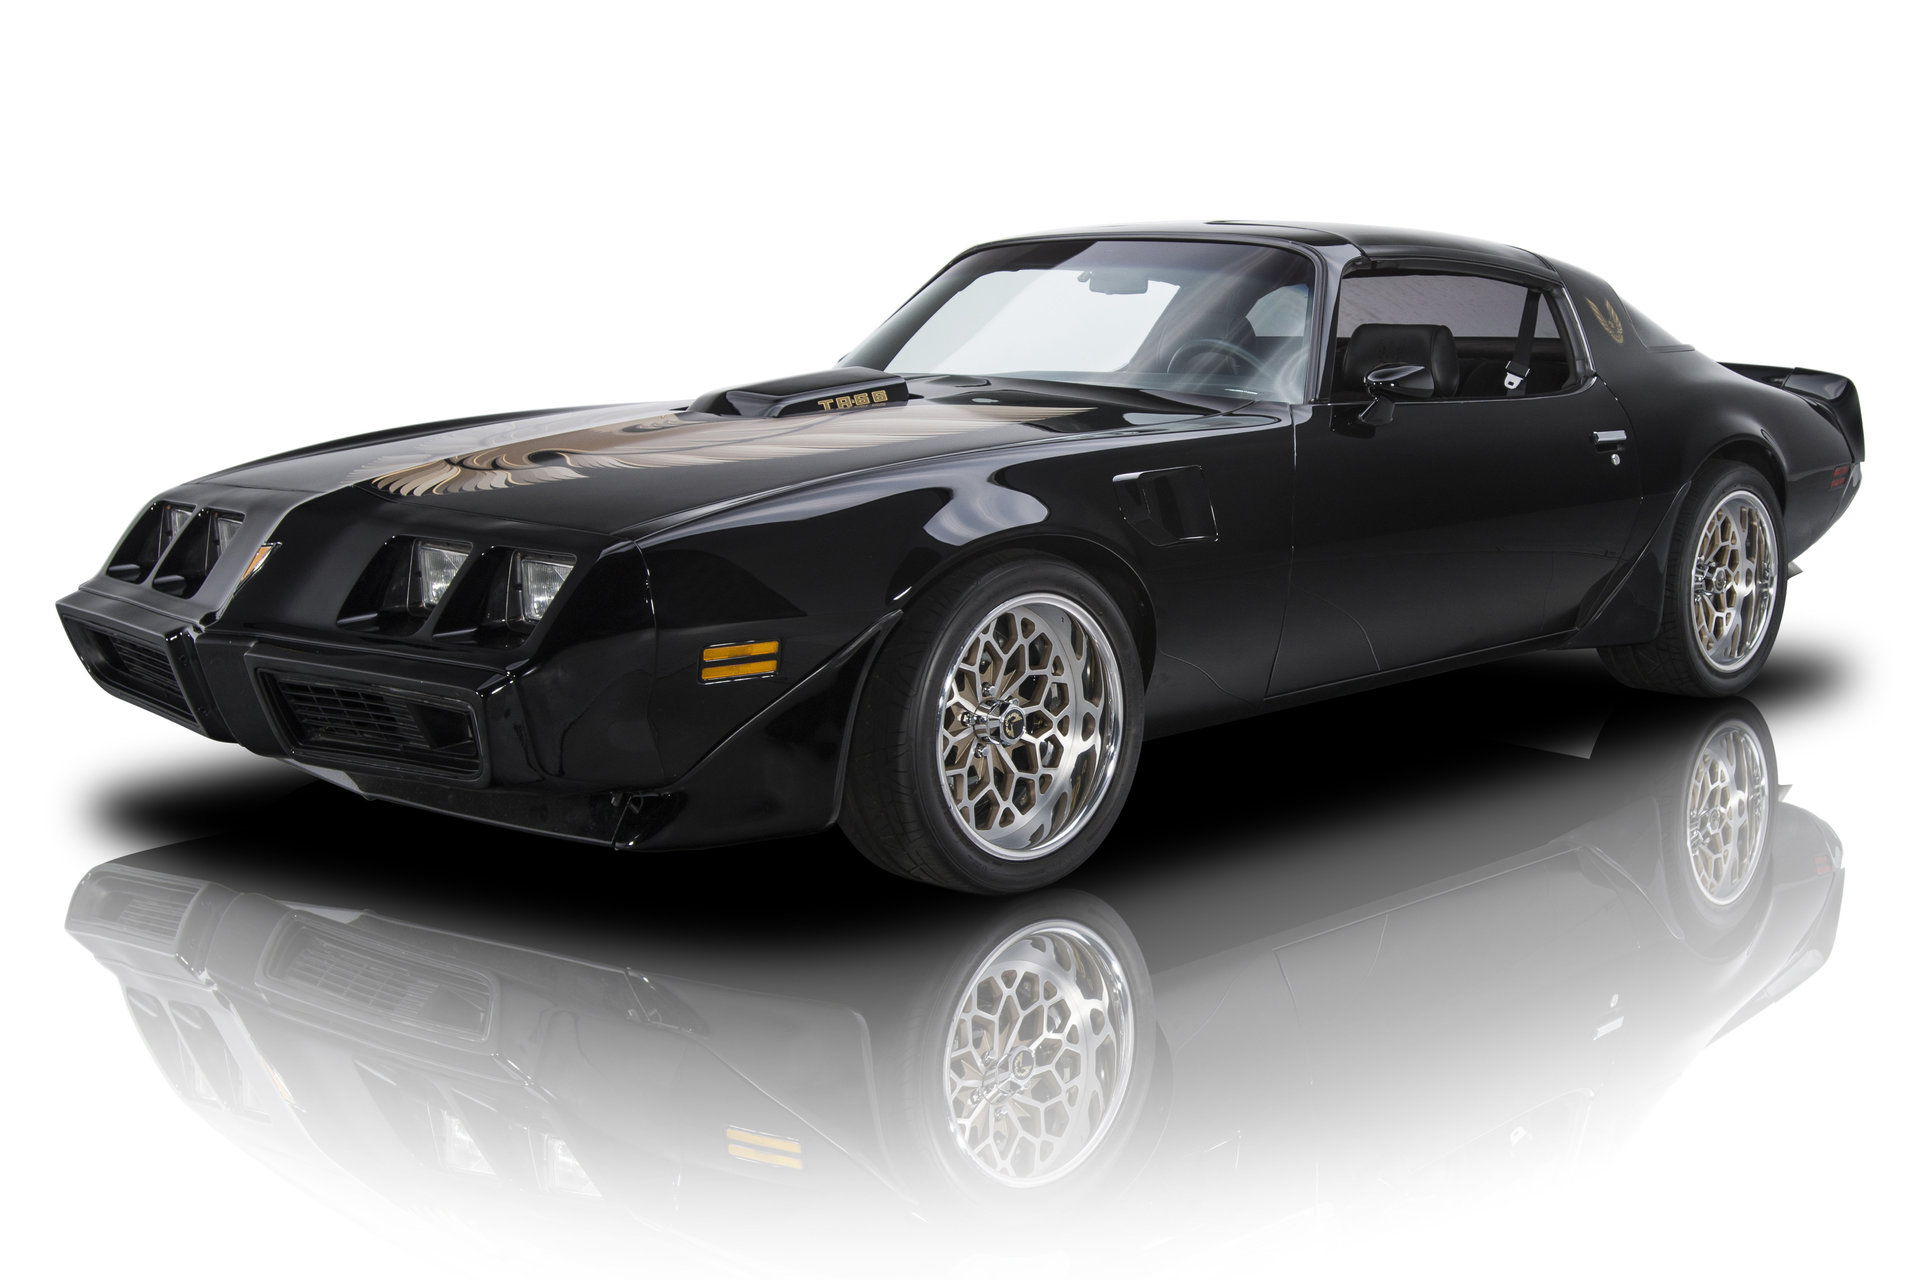 Automotive Air Conditioning >> 135986 1980 Pontiac Firebird | RK Motors Classic and Performance Cars for Sale